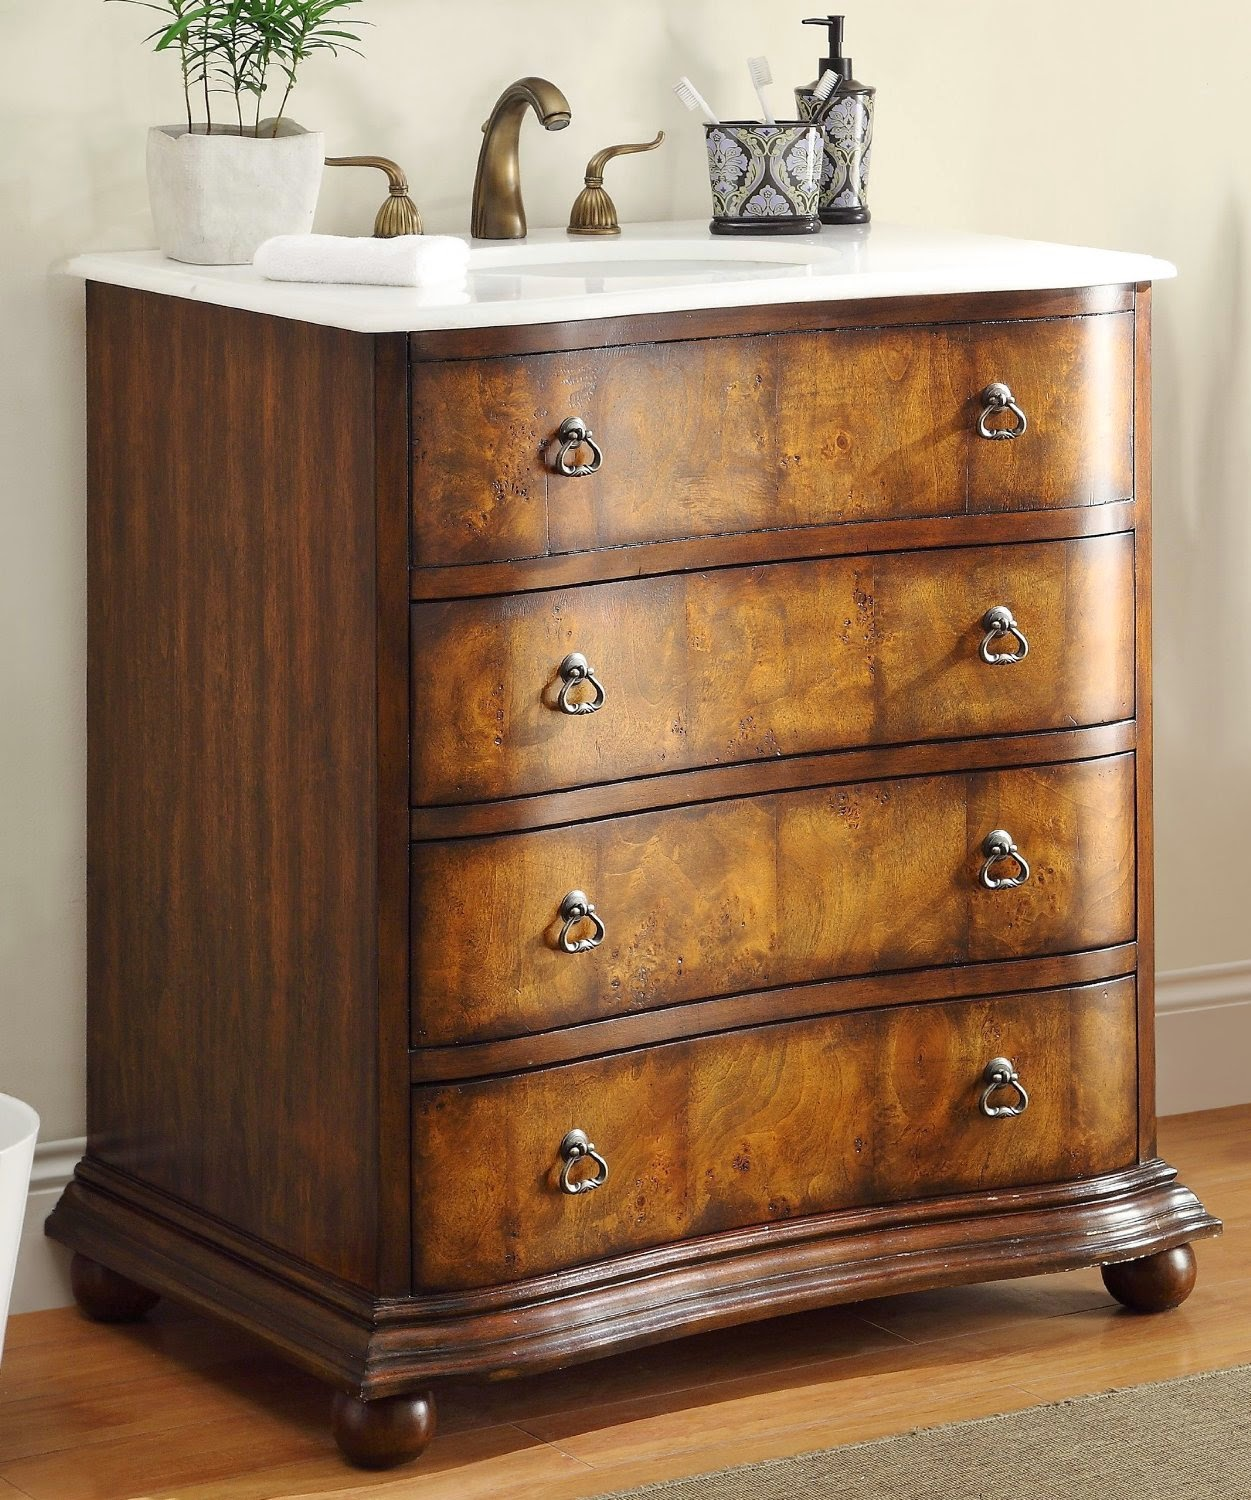 Discount Bathroom Vanities Antique Bathroom Vanities Never Get Old